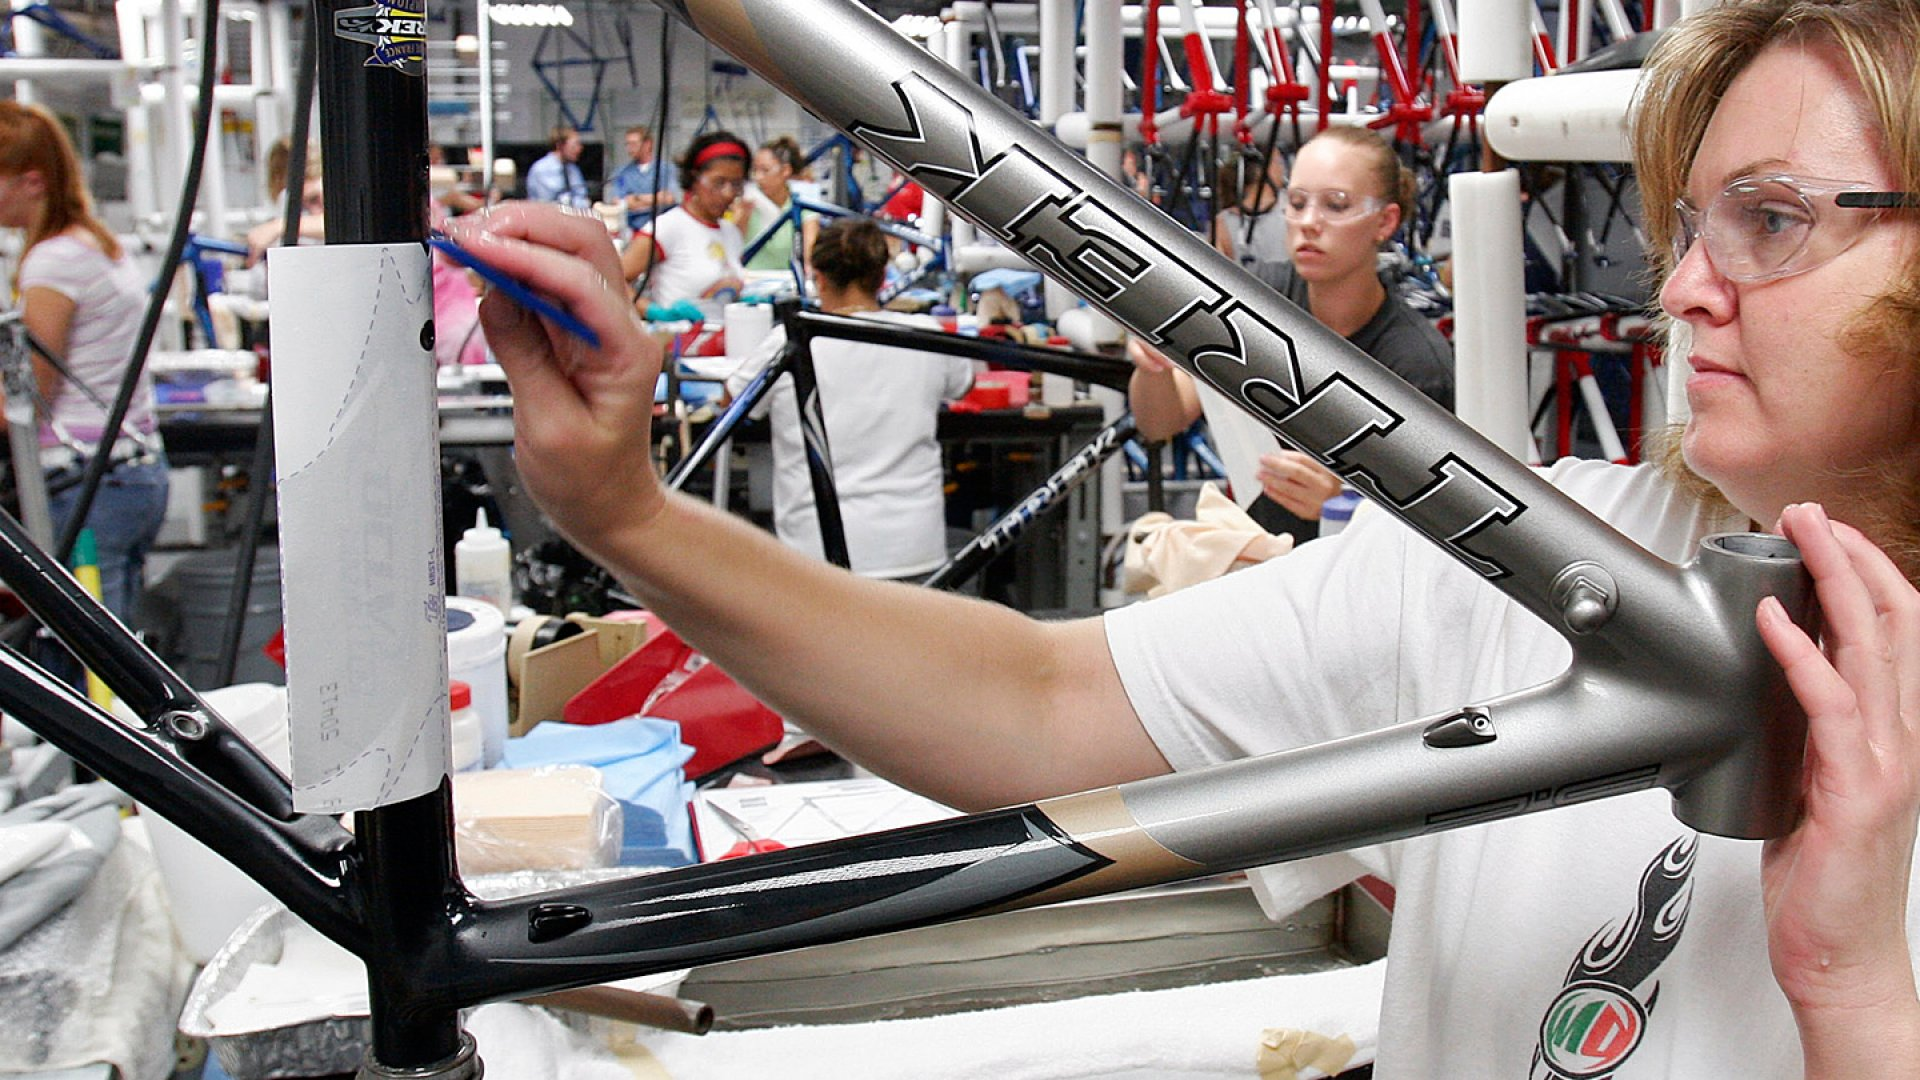 Justine Winter, right, applies a decal to a bicycle frame at the Trek Bicycle Corp. in Wisconsin